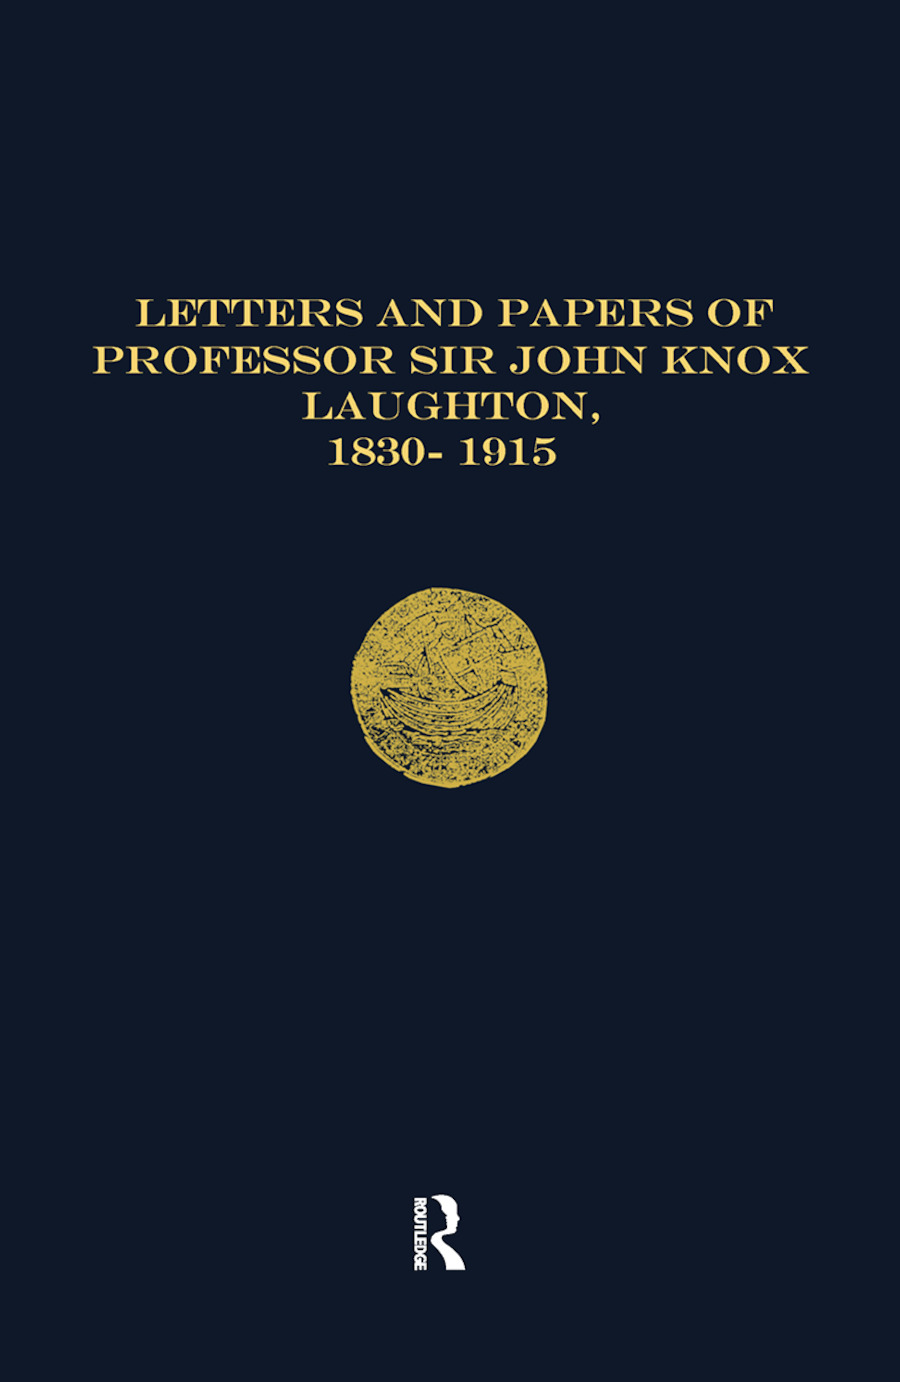 Letters and Papers of Professor Sir John Knox Laughton, 1830-1915: 1st Edition (Paperback) book cover